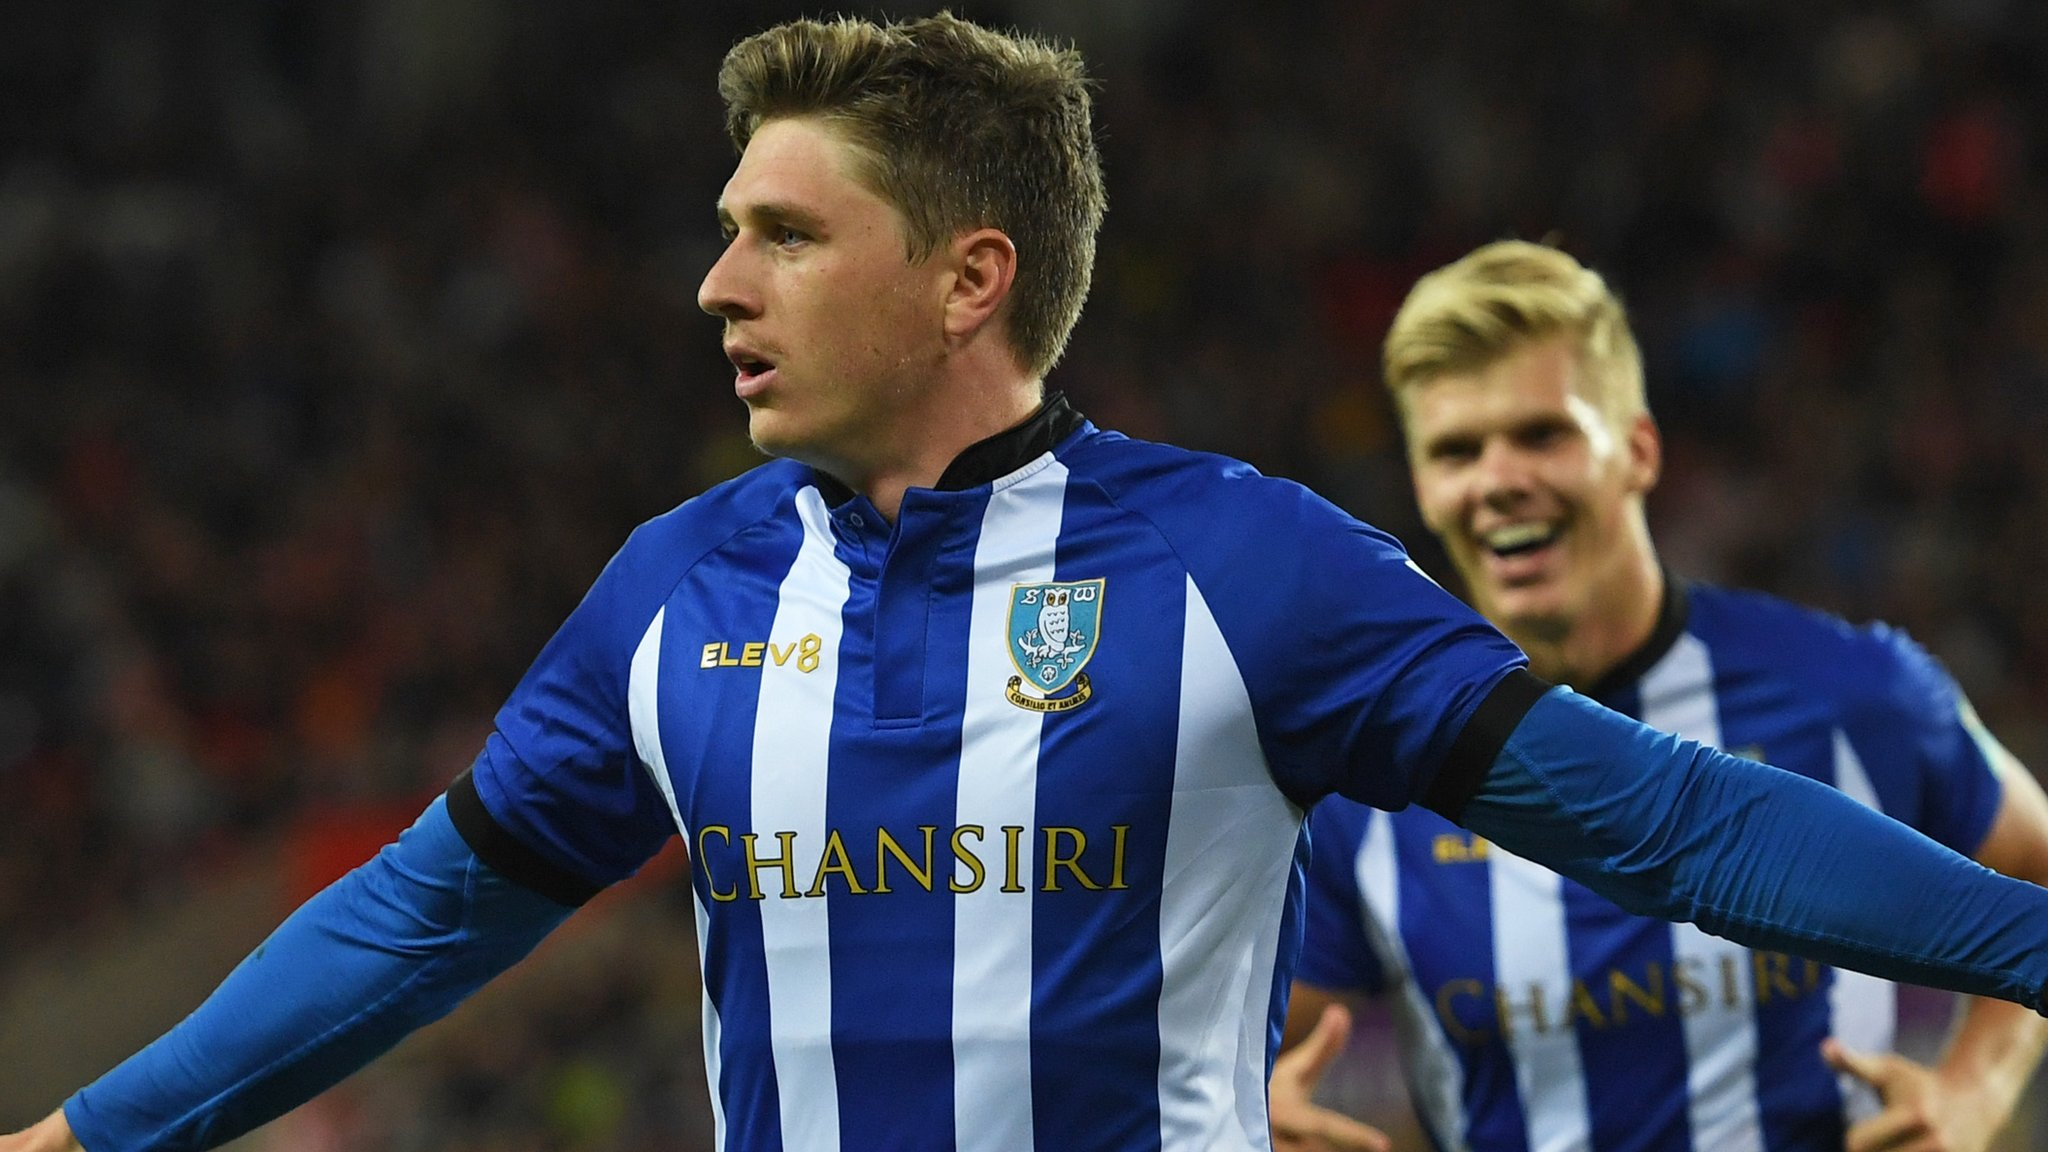 Sheffield Wednesday beat Sunderland to set up Wolves tie